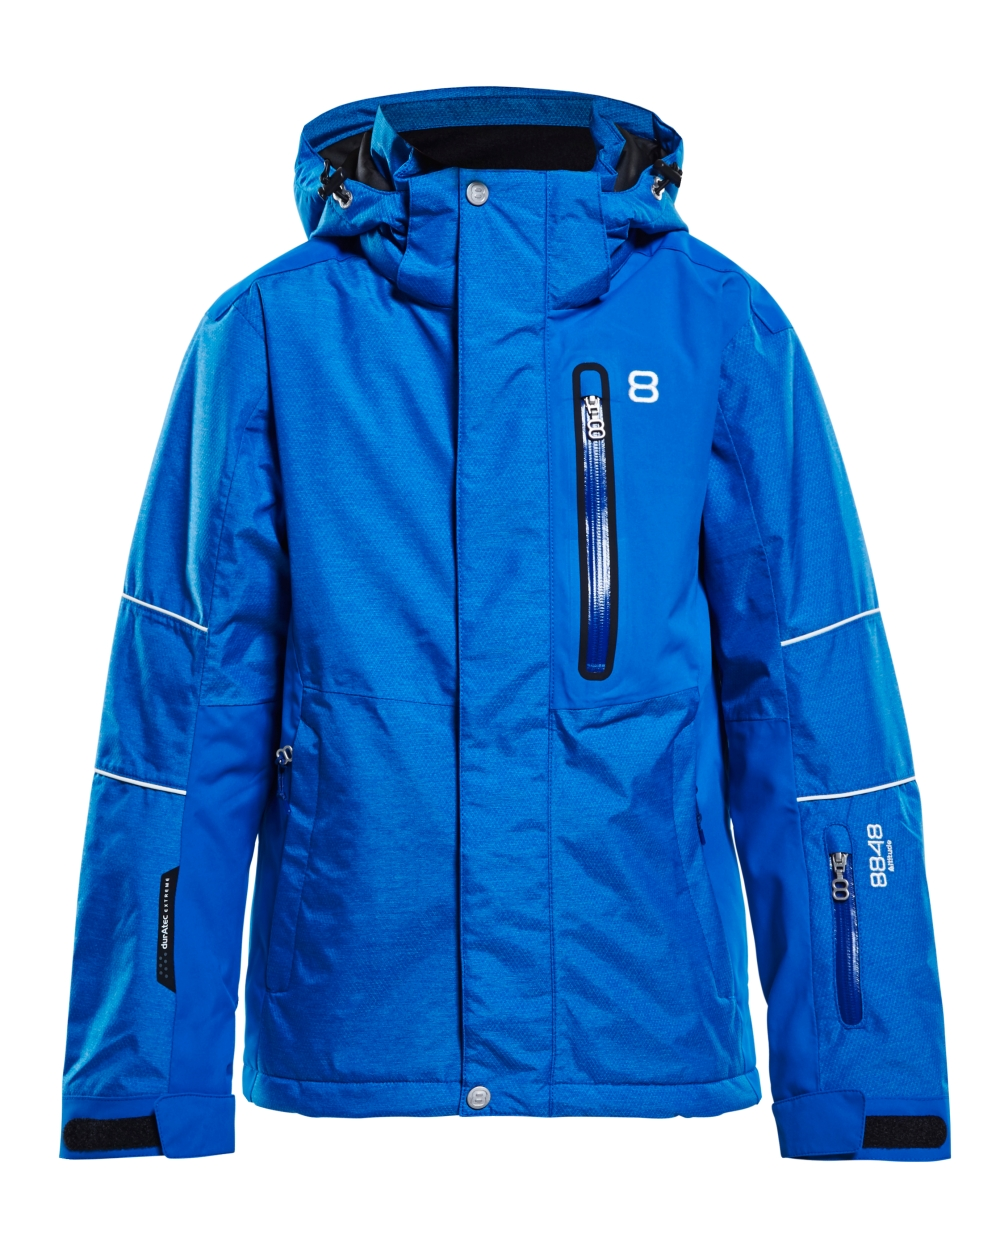 8848 Altitude Nic Jr Jacket Blue